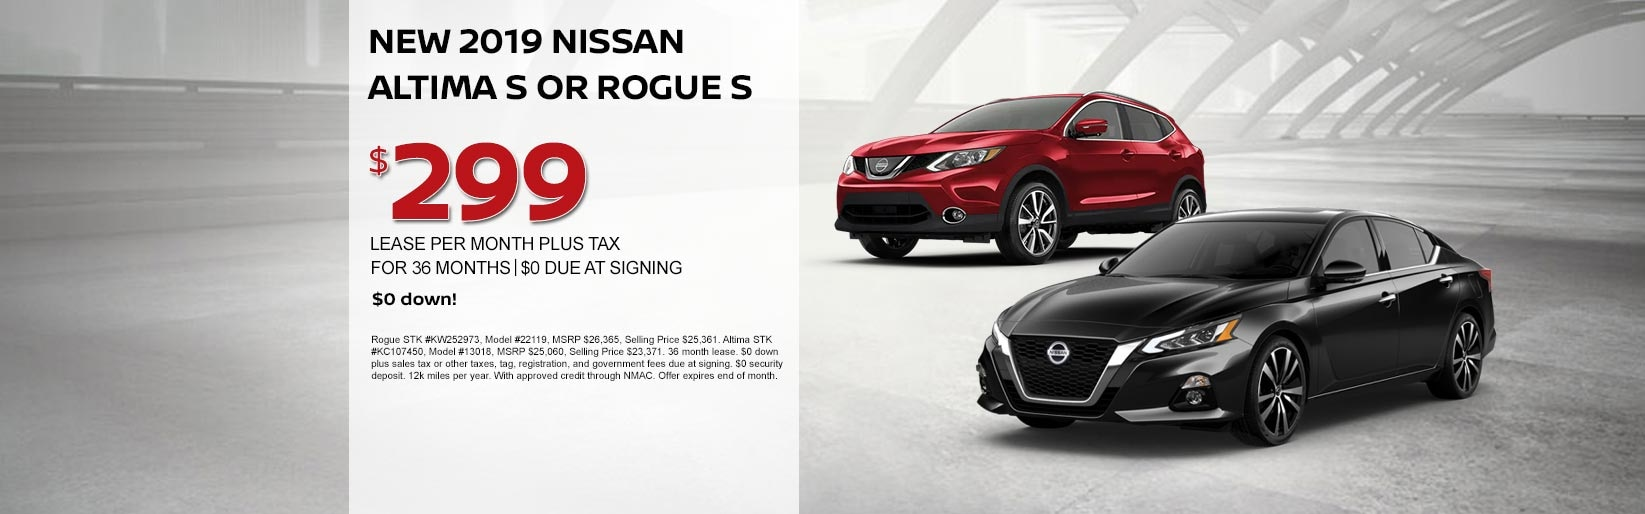 df7d875fd New   Pre-Owned Nissan Dealership Near Me In Miami